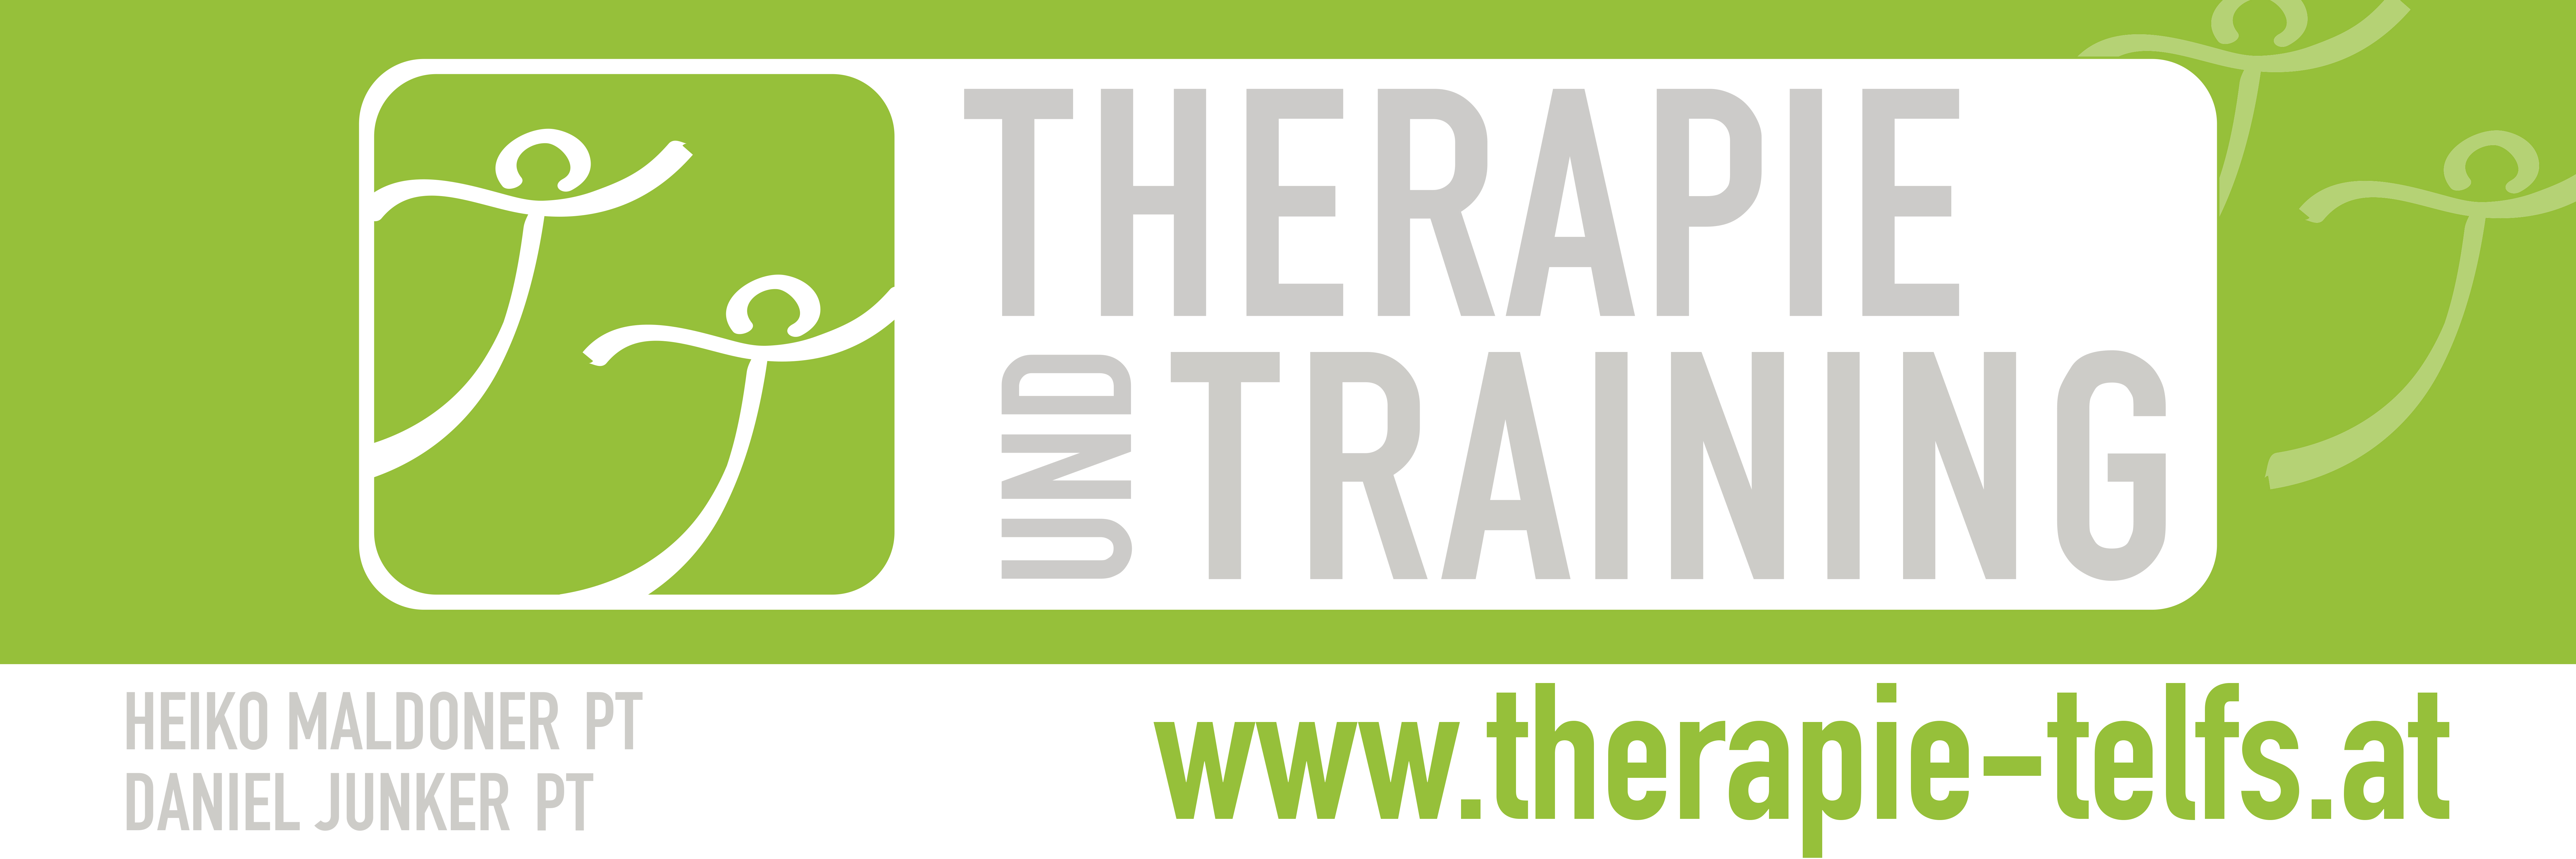 Therapie&Training